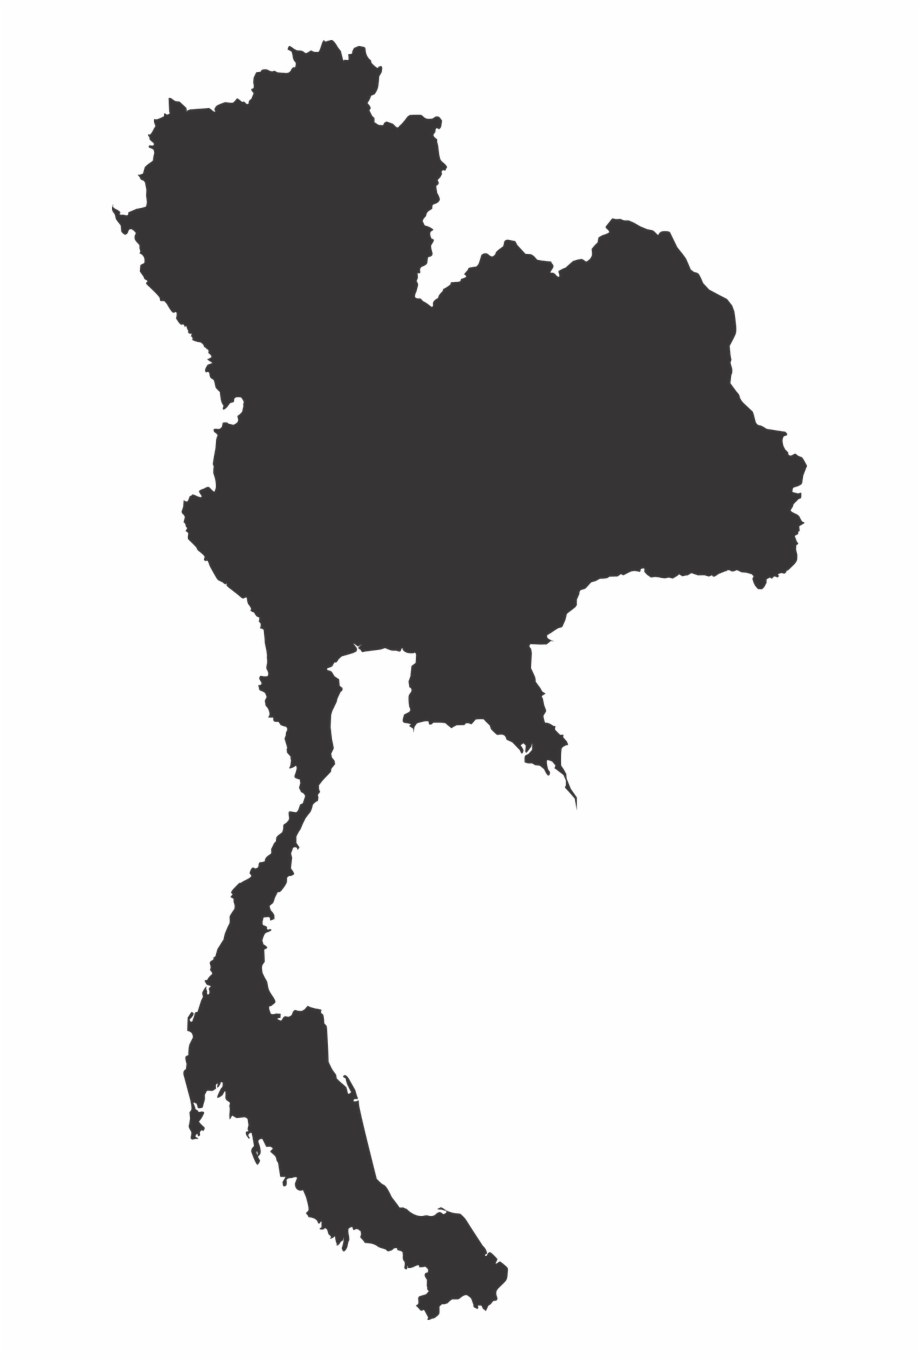 Thailand Map Map Vector Png Image.